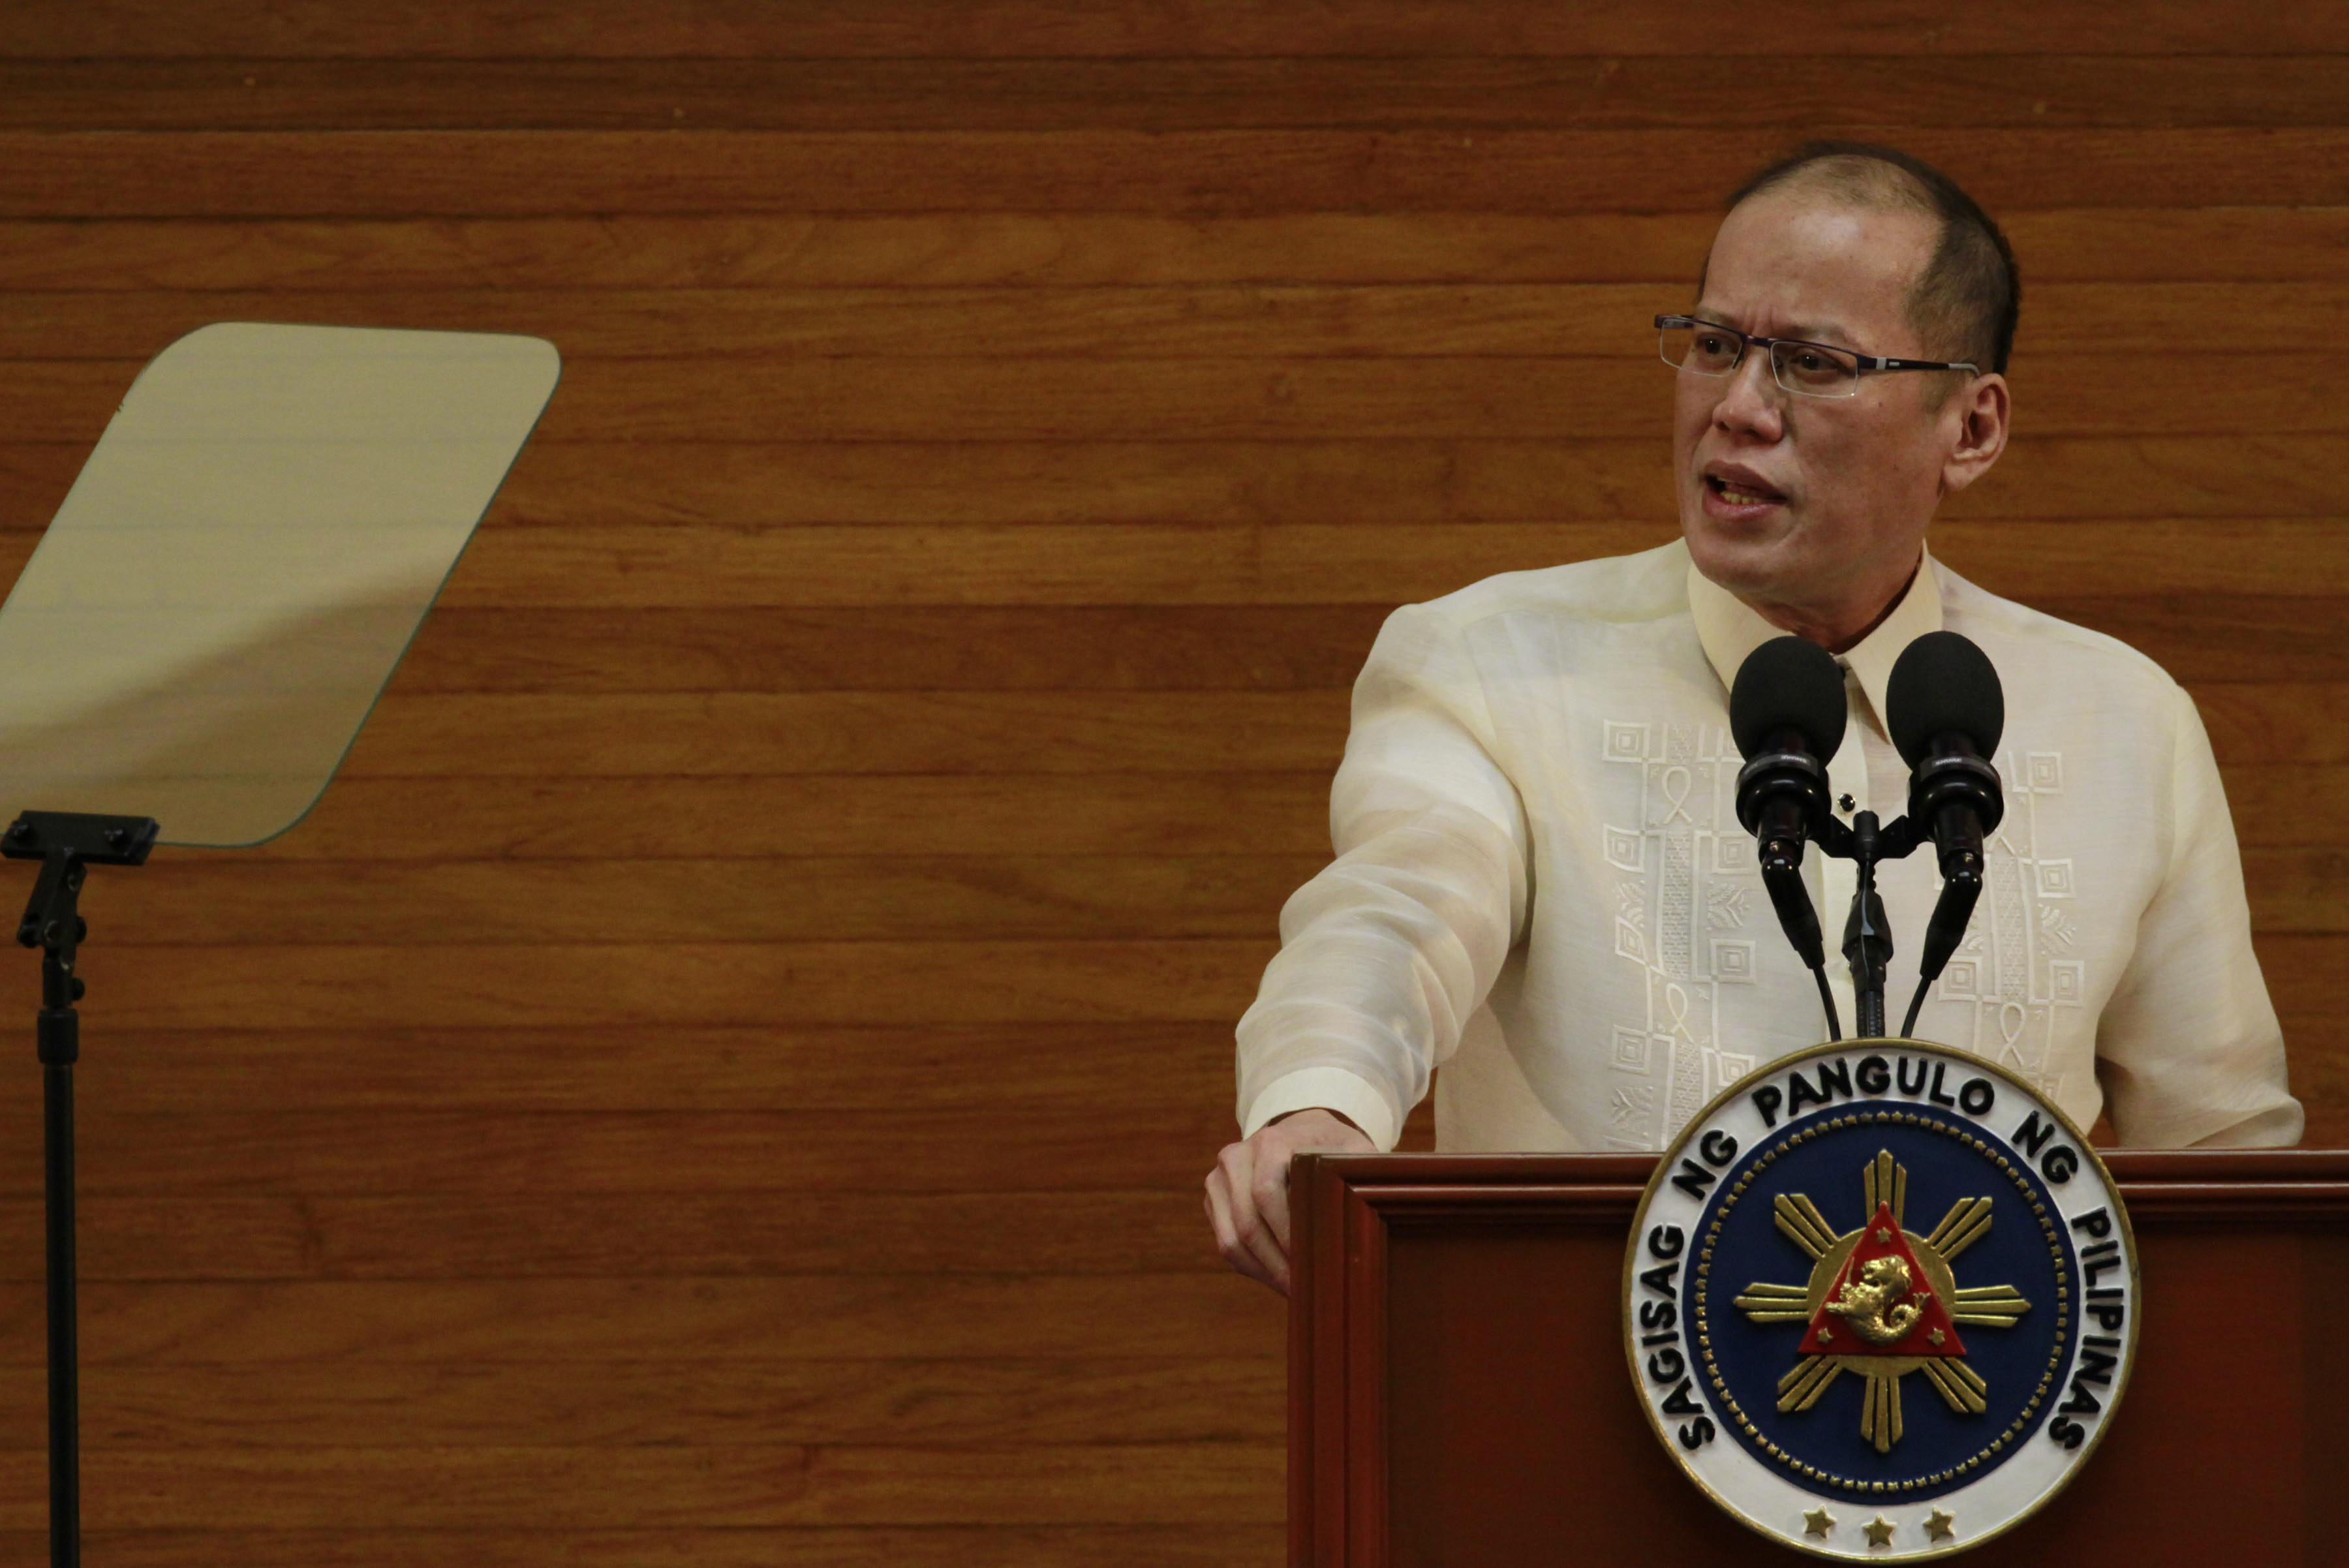 PNOY'S SONA. Former president Benigno S. Aquino III delivers his 6th and last State of the Nation Address (SONA) during the Joint Session of the 16th Congress at the Session Hall of the House of Representatives Complex in Constitution Hills, Quezon City. Photo by Rey Baniquet/Malacau00f1ang Photo Bureau